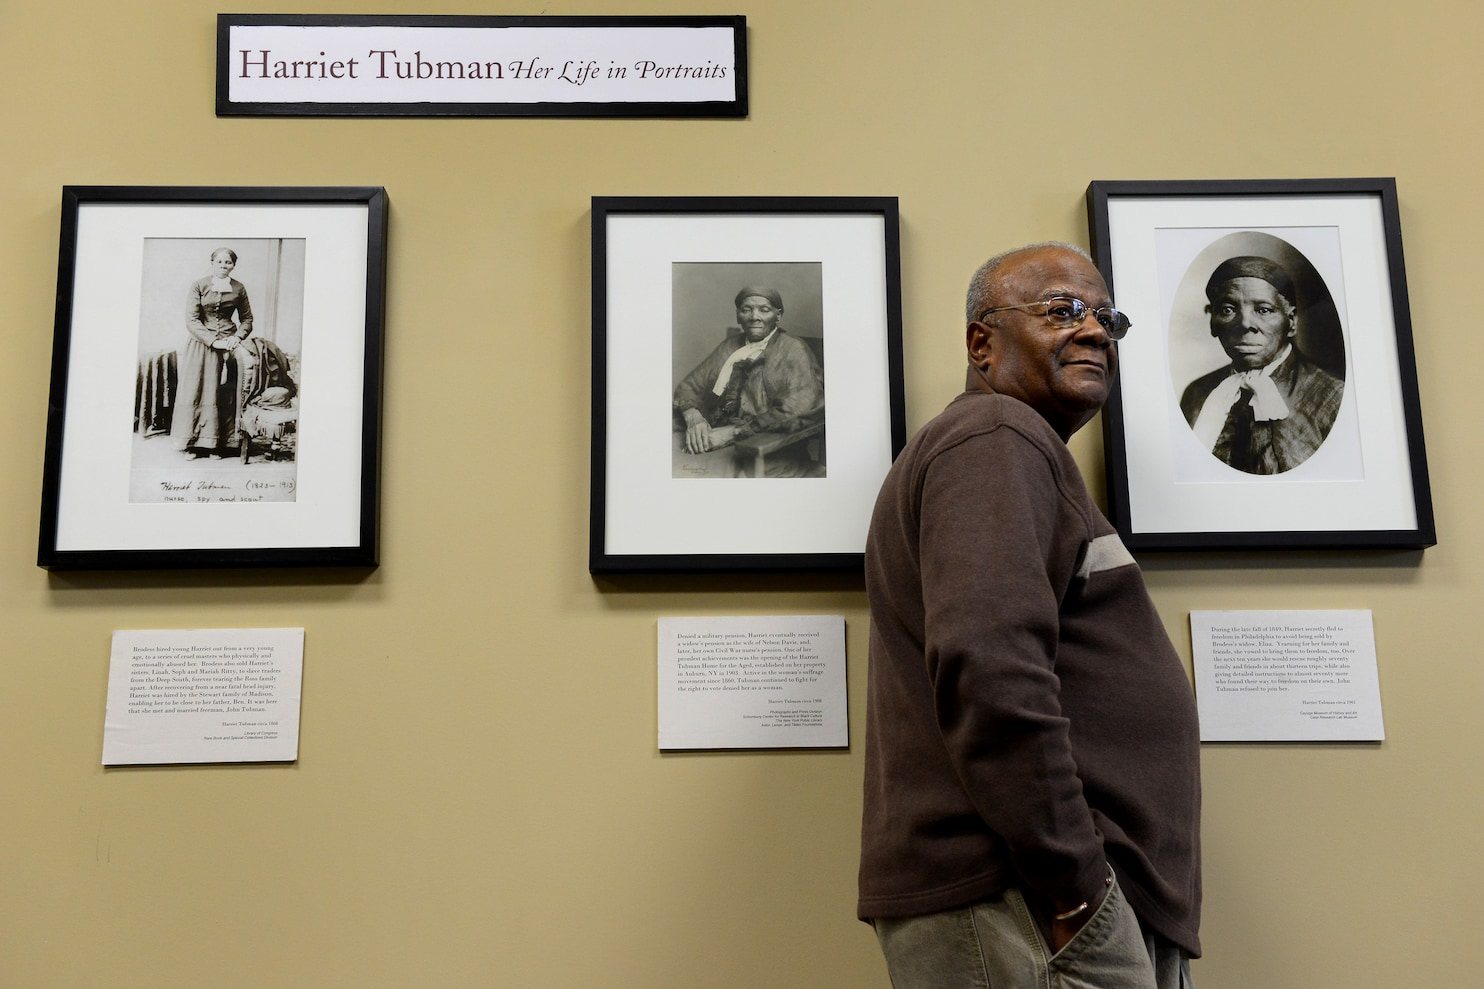 hight resolution of A century after Harriet Tubman died